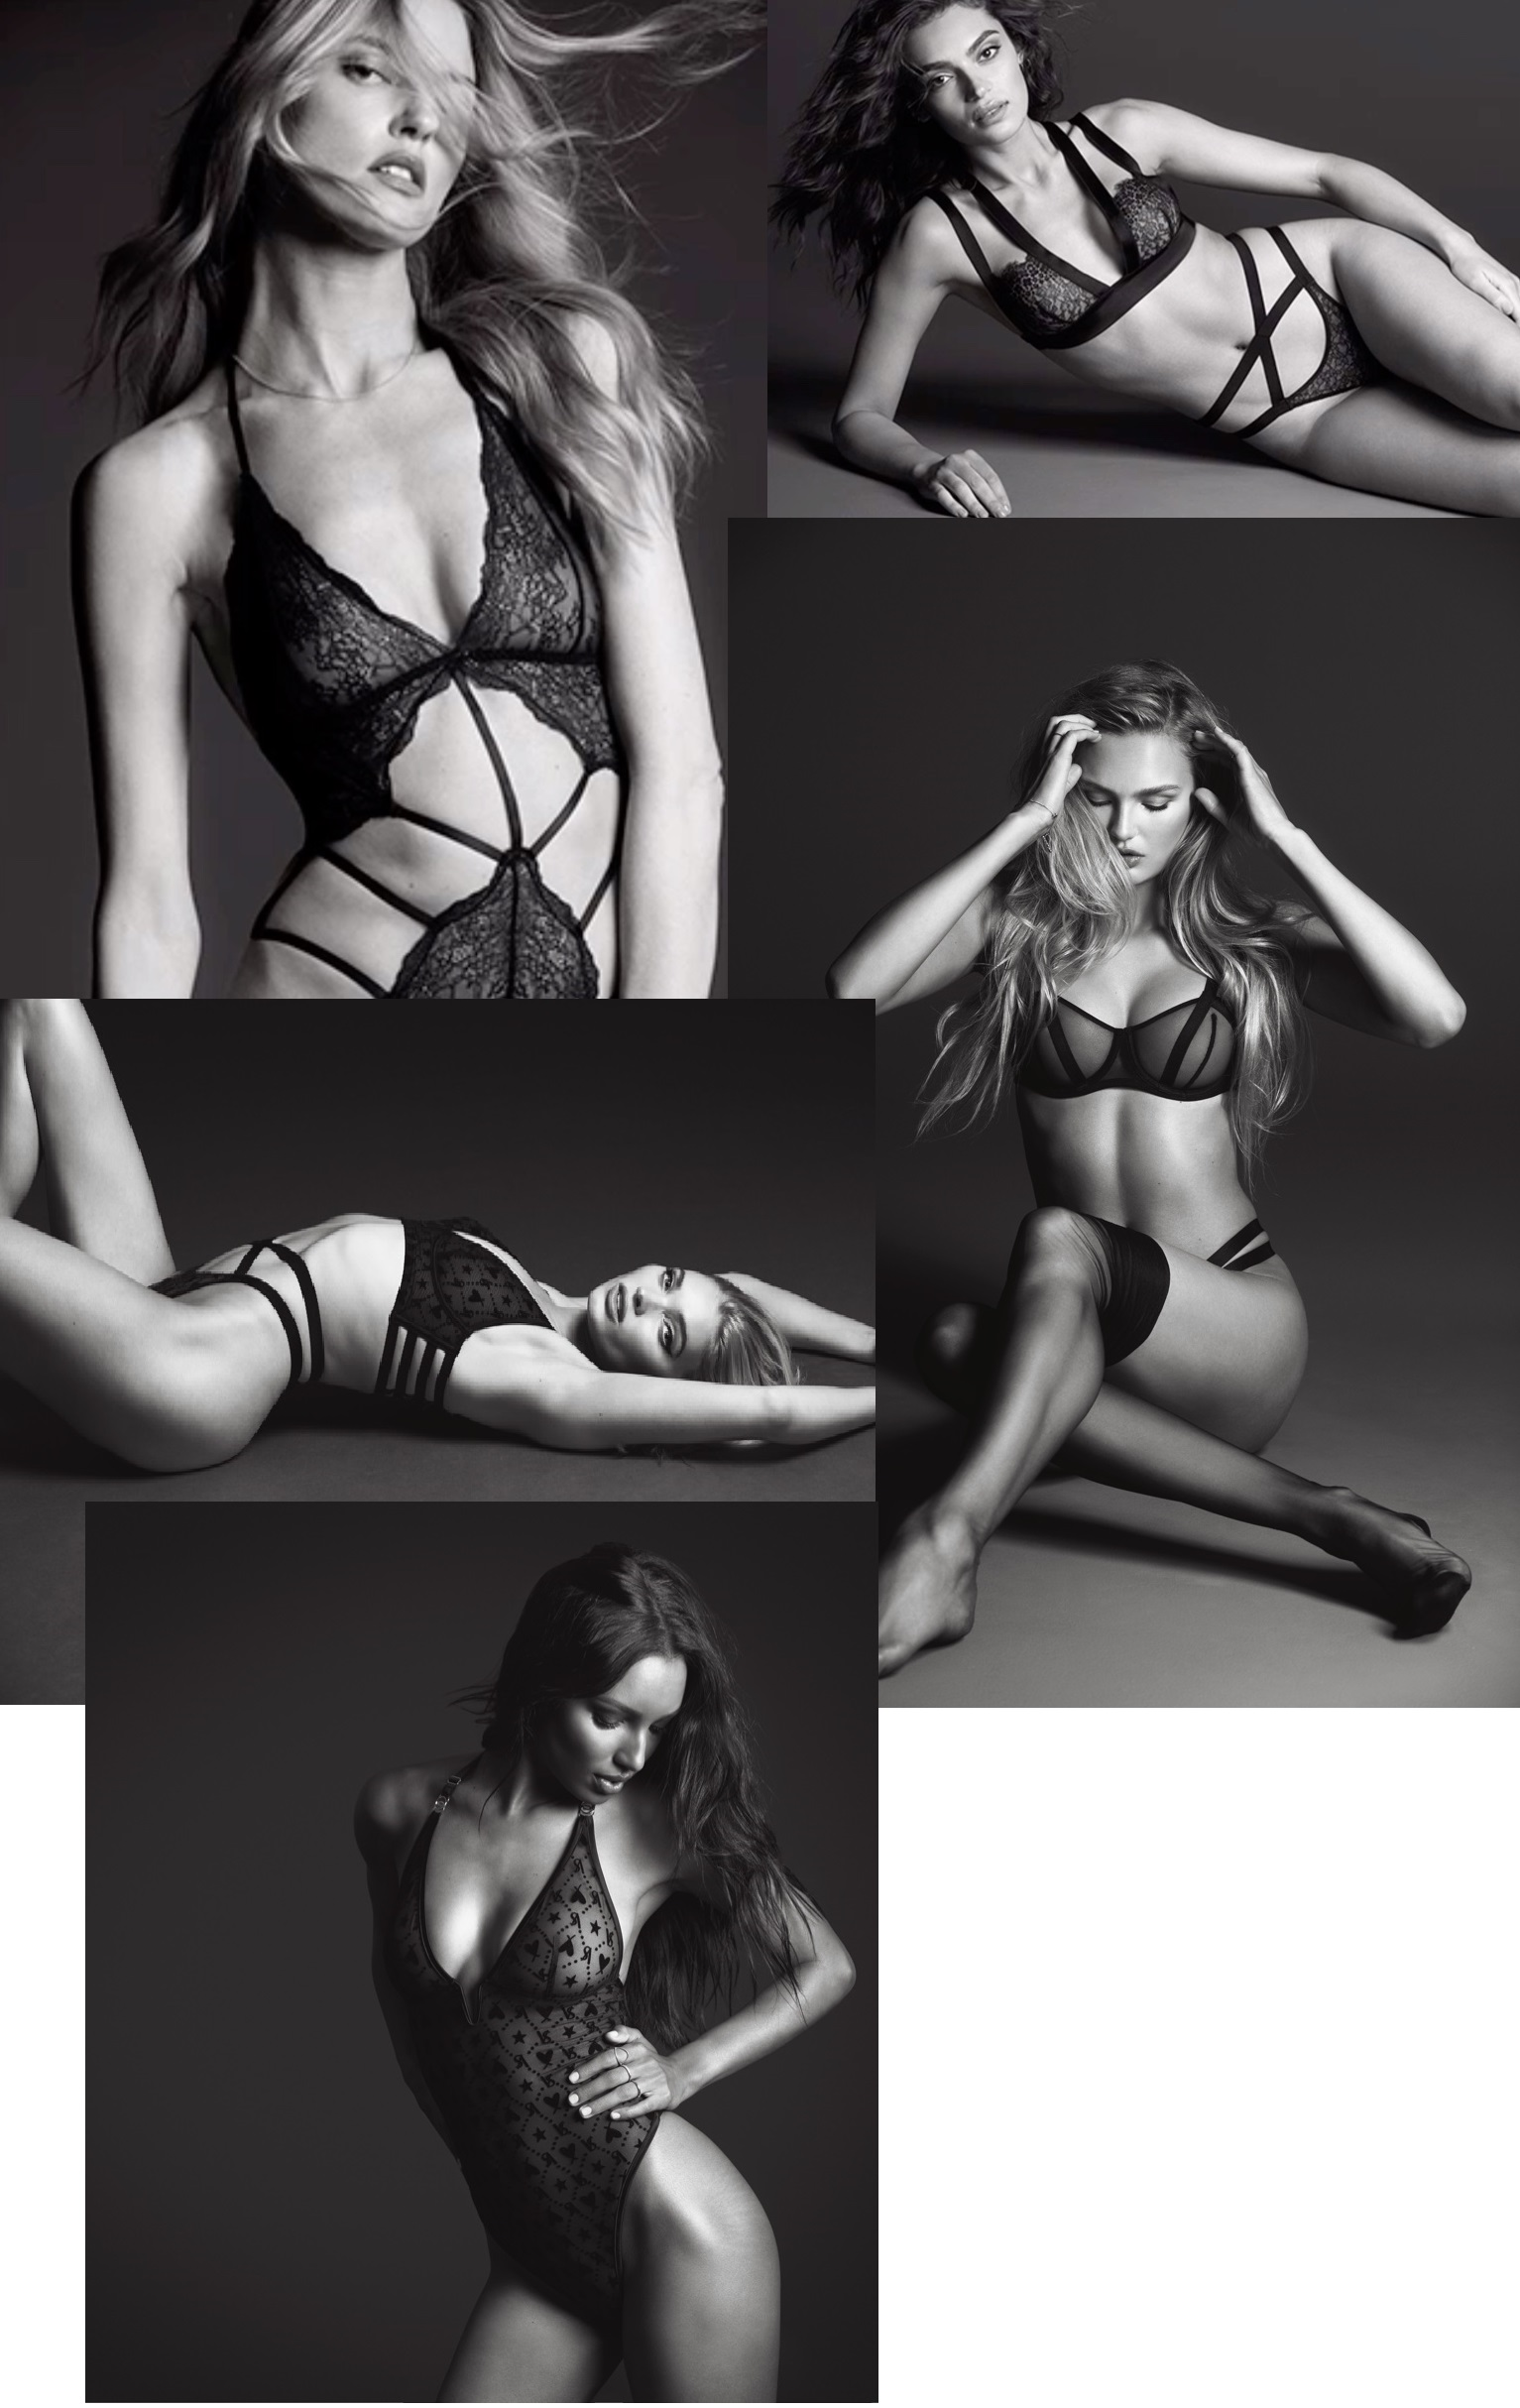 Victorias-Secret-Pre-Fall-2019-Lingerie-Campaign-Adam-Franzino- group.jpg